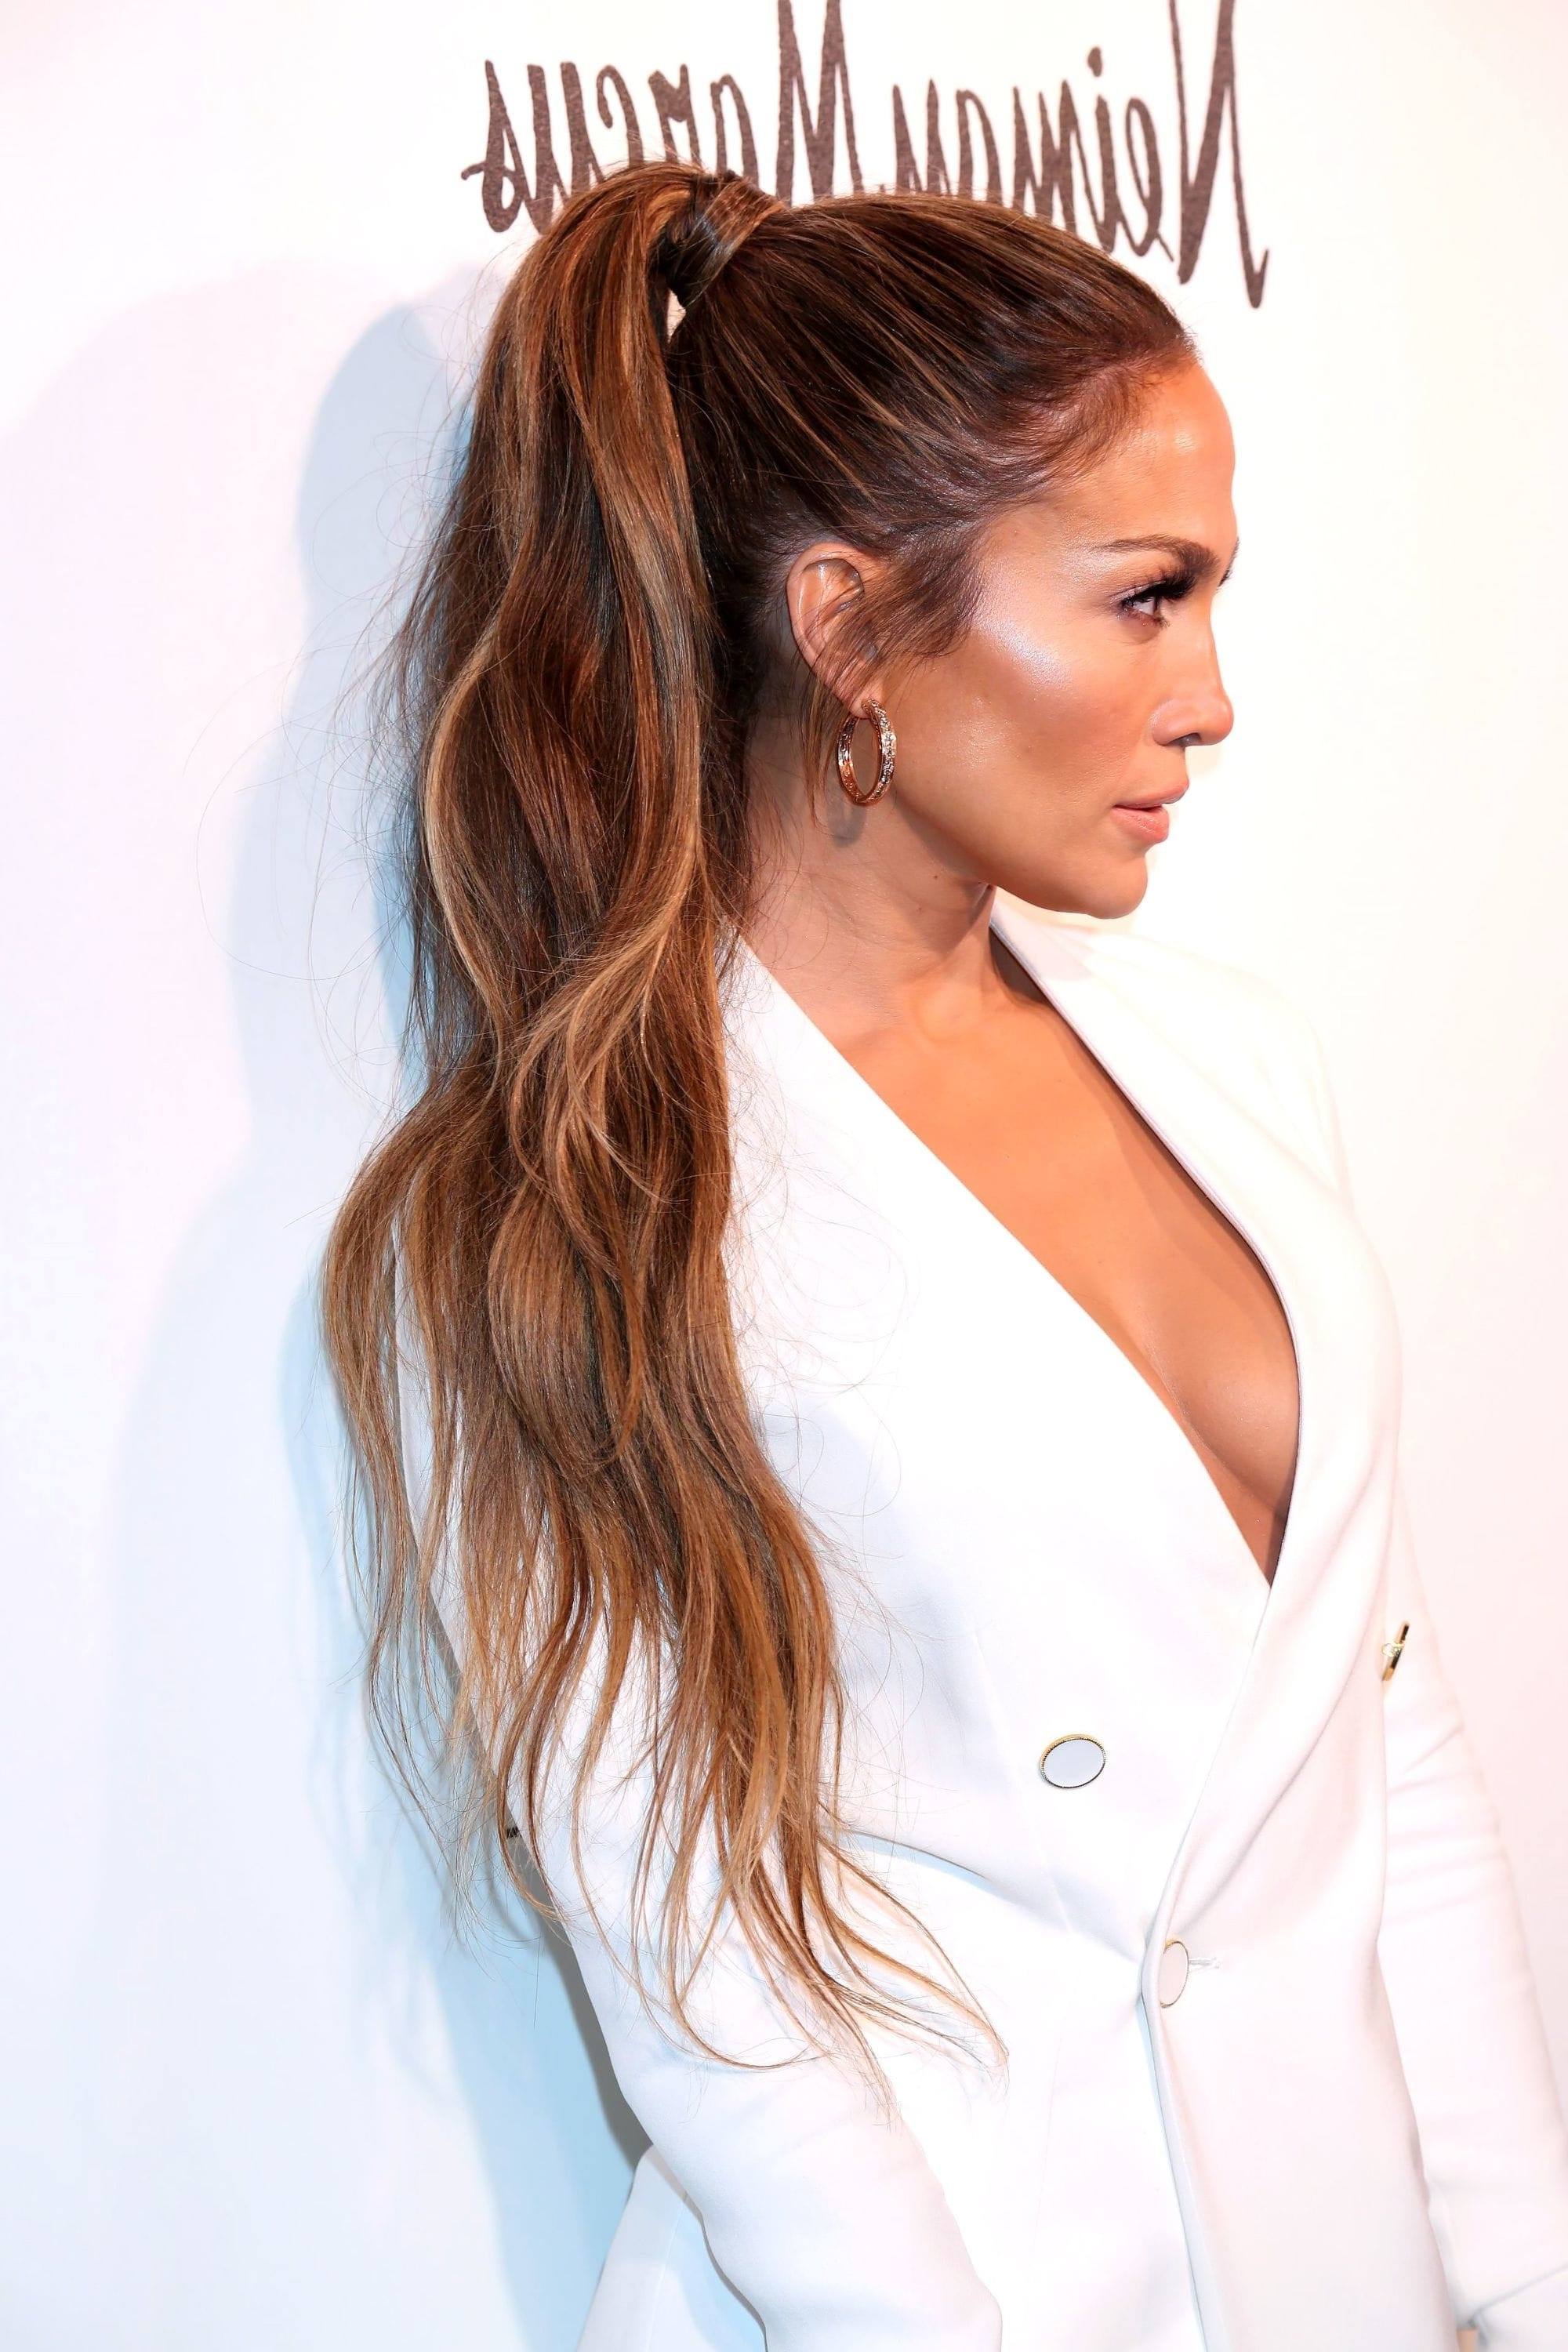 Easy High Ponytail Video Tutorial With Freddy My Love Pertaining To Most Up To Date Chic High Ponytail Hairstyles With A Twist (View 6 of 20)